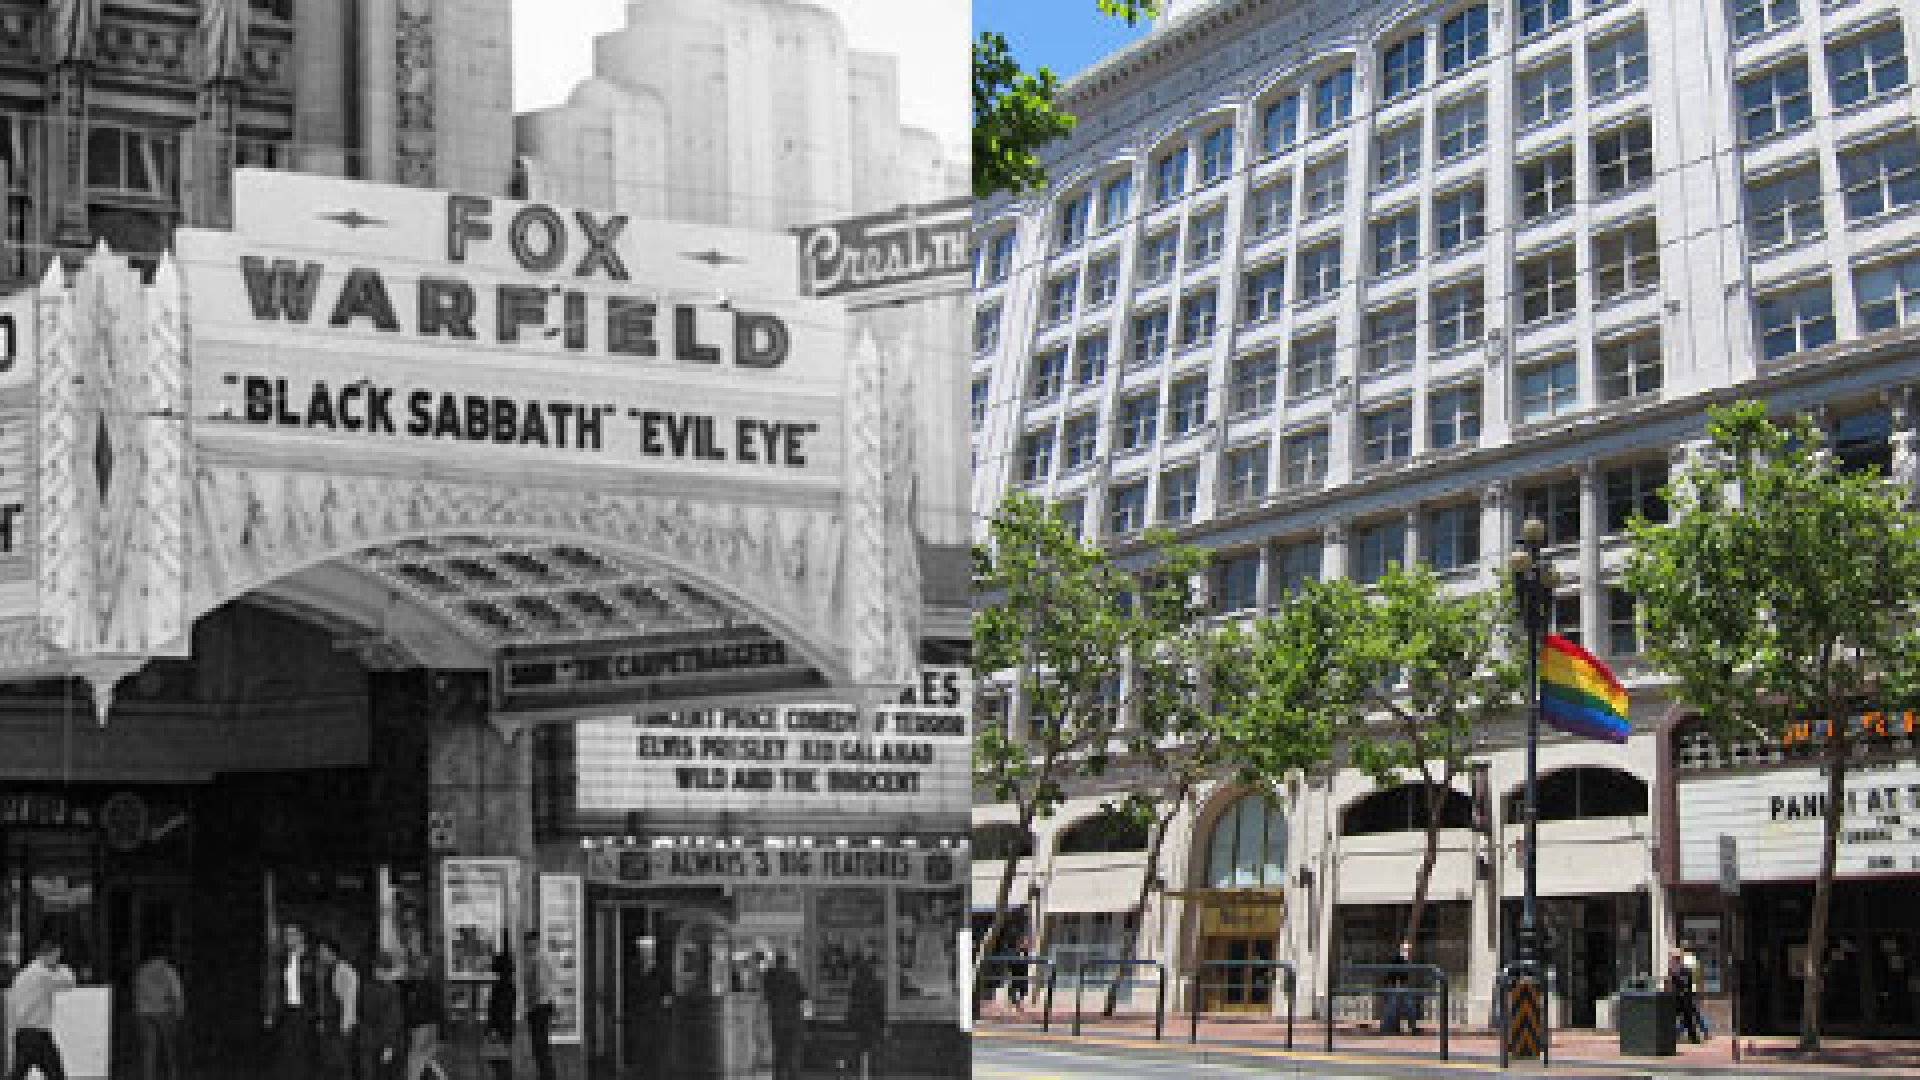 <strong>THEN AND NOW:</STRONG> The Warfield Theater brought vibrancy to Market Street in the 1920s, then witnessed the neighborhood's decay before a recent resurgence, no small thanks to the start-up boom.